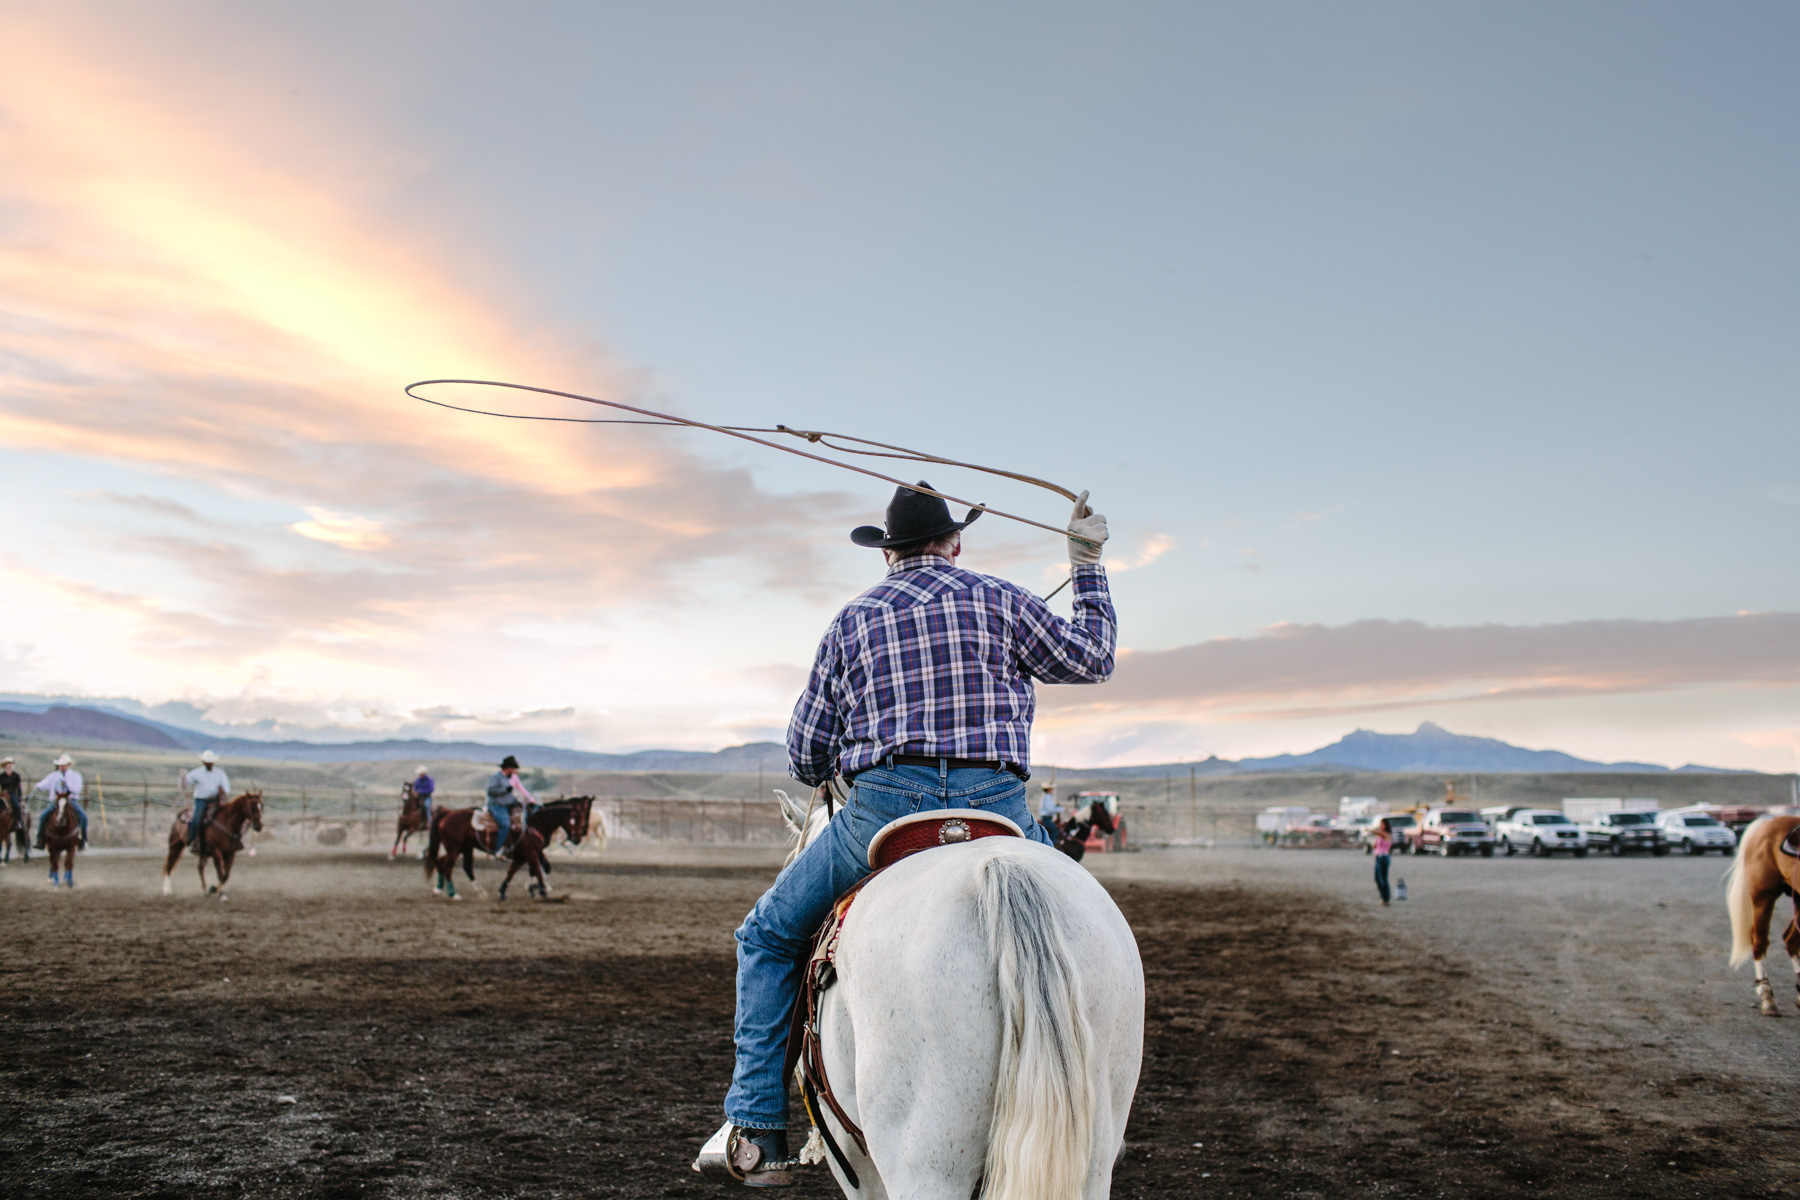 Man With Lasso at Cody Wyoming Rodeo